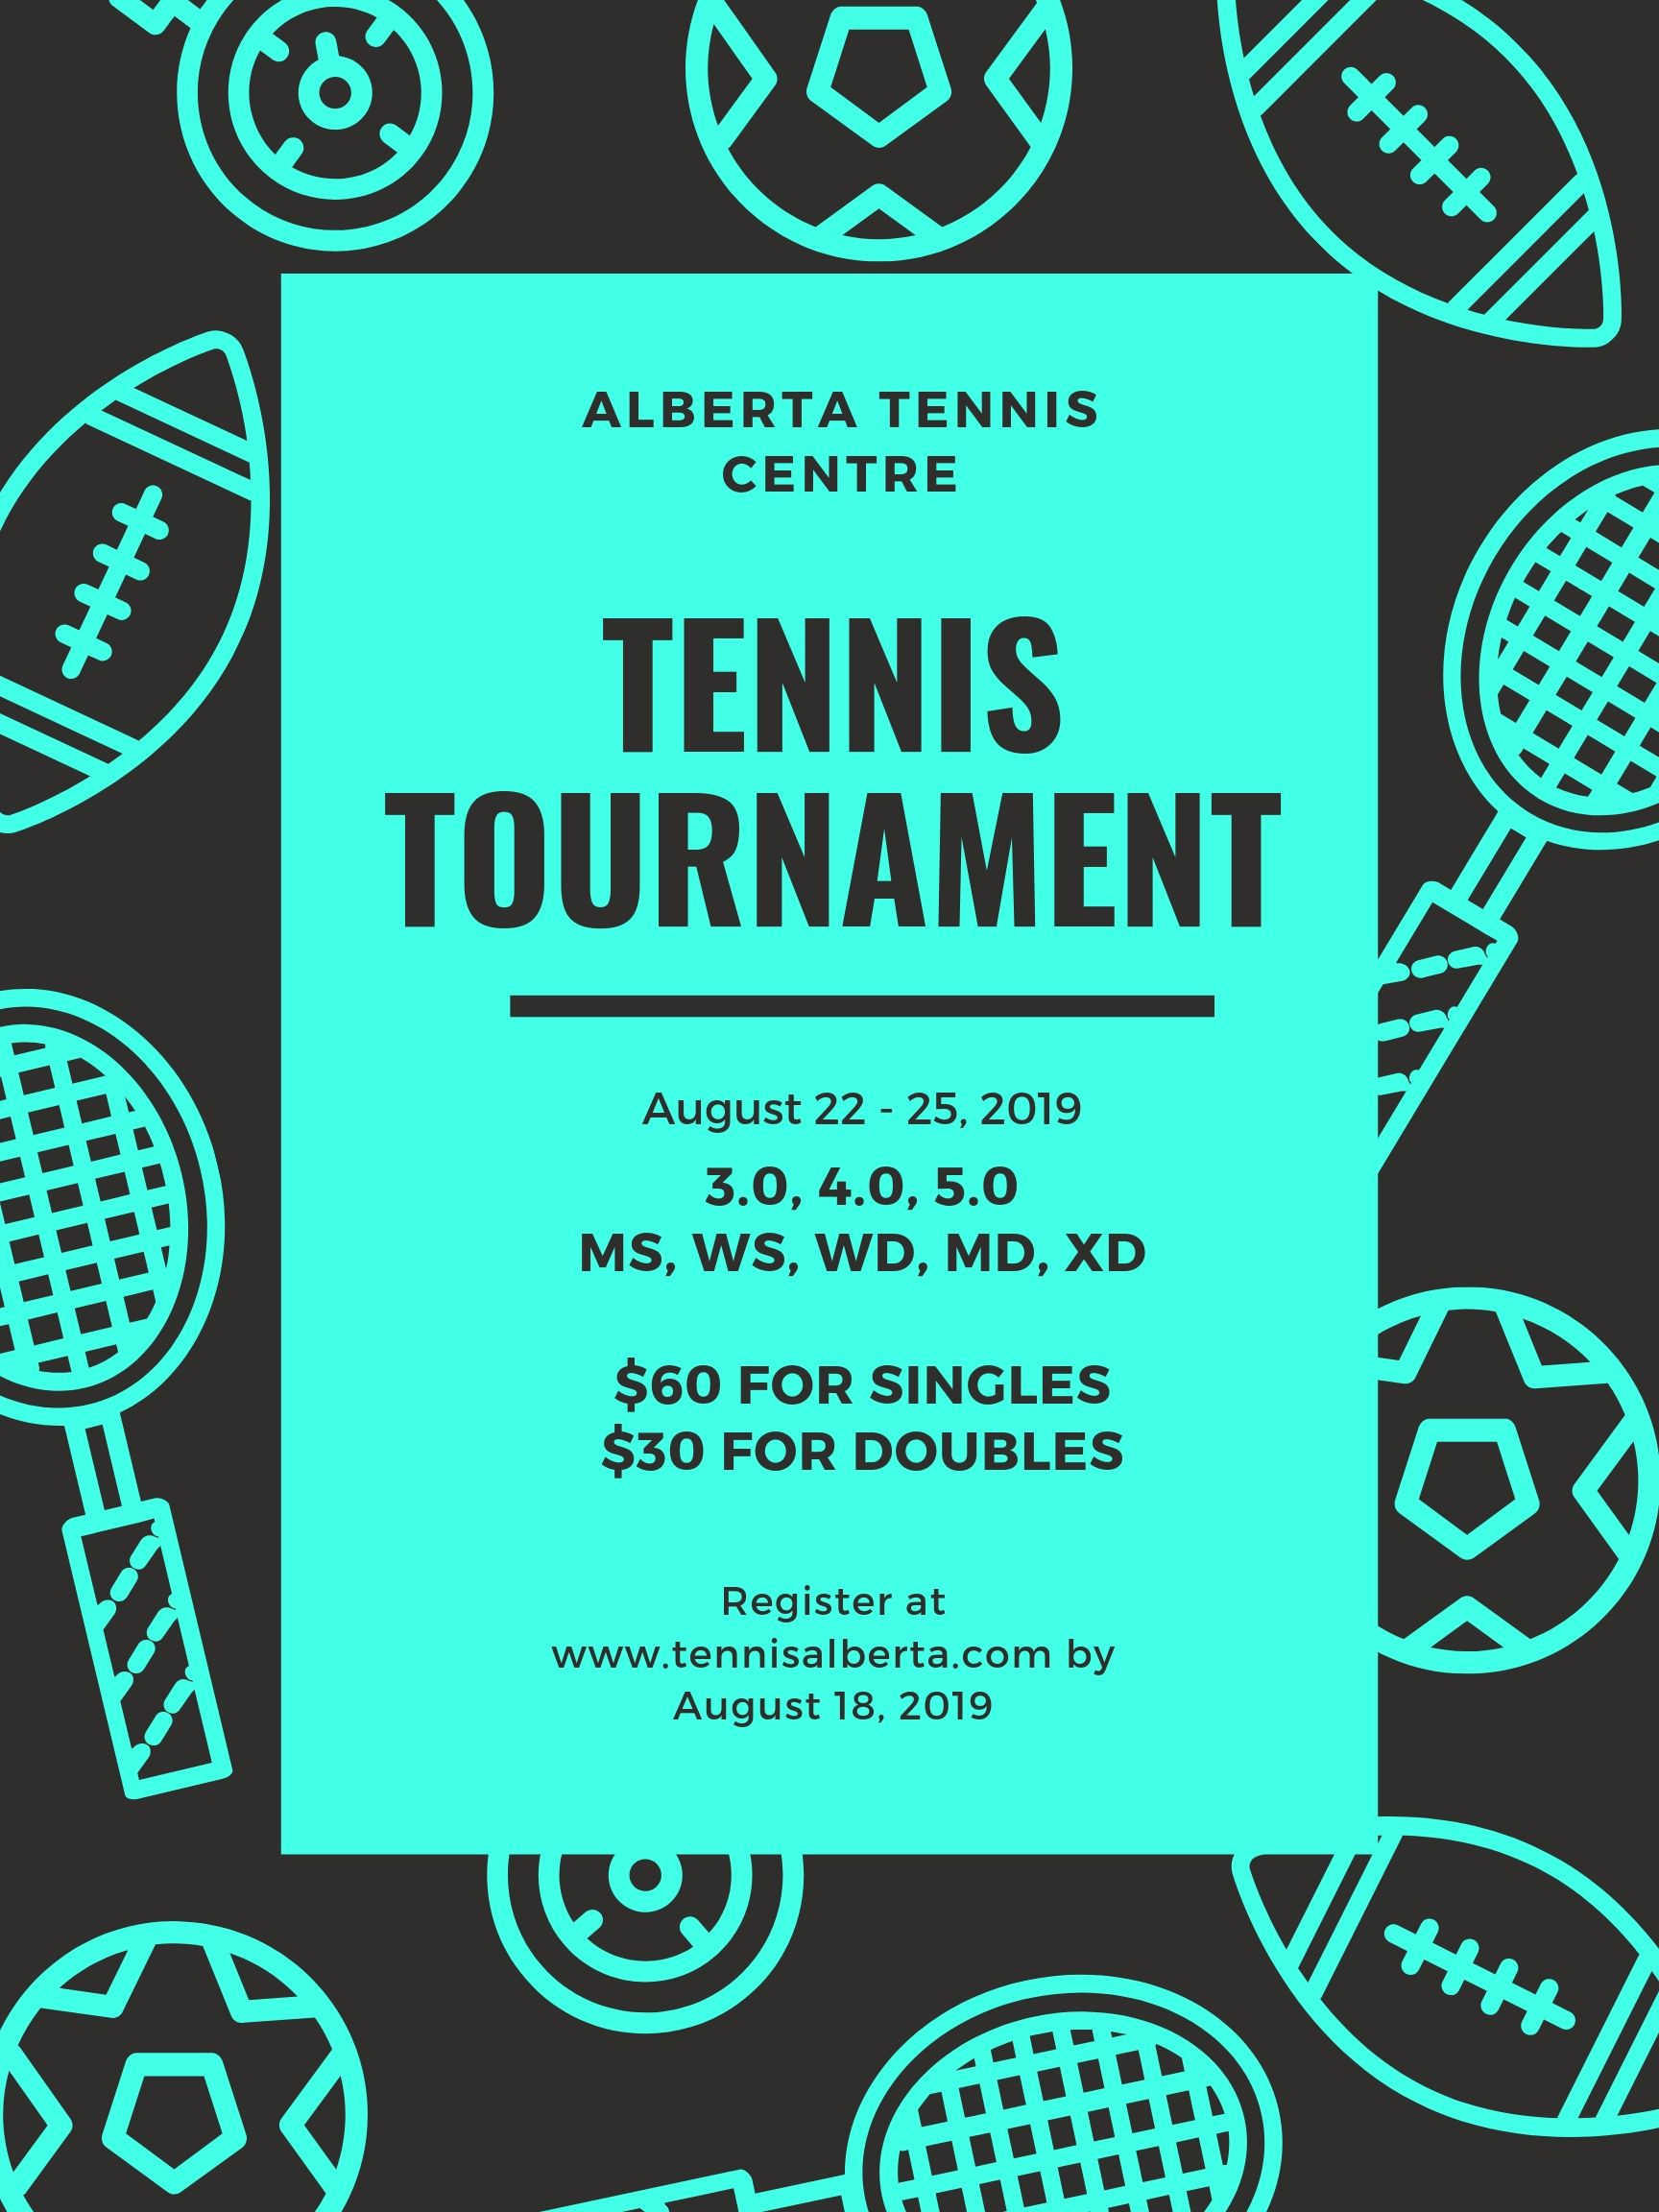 new tournament at atc!